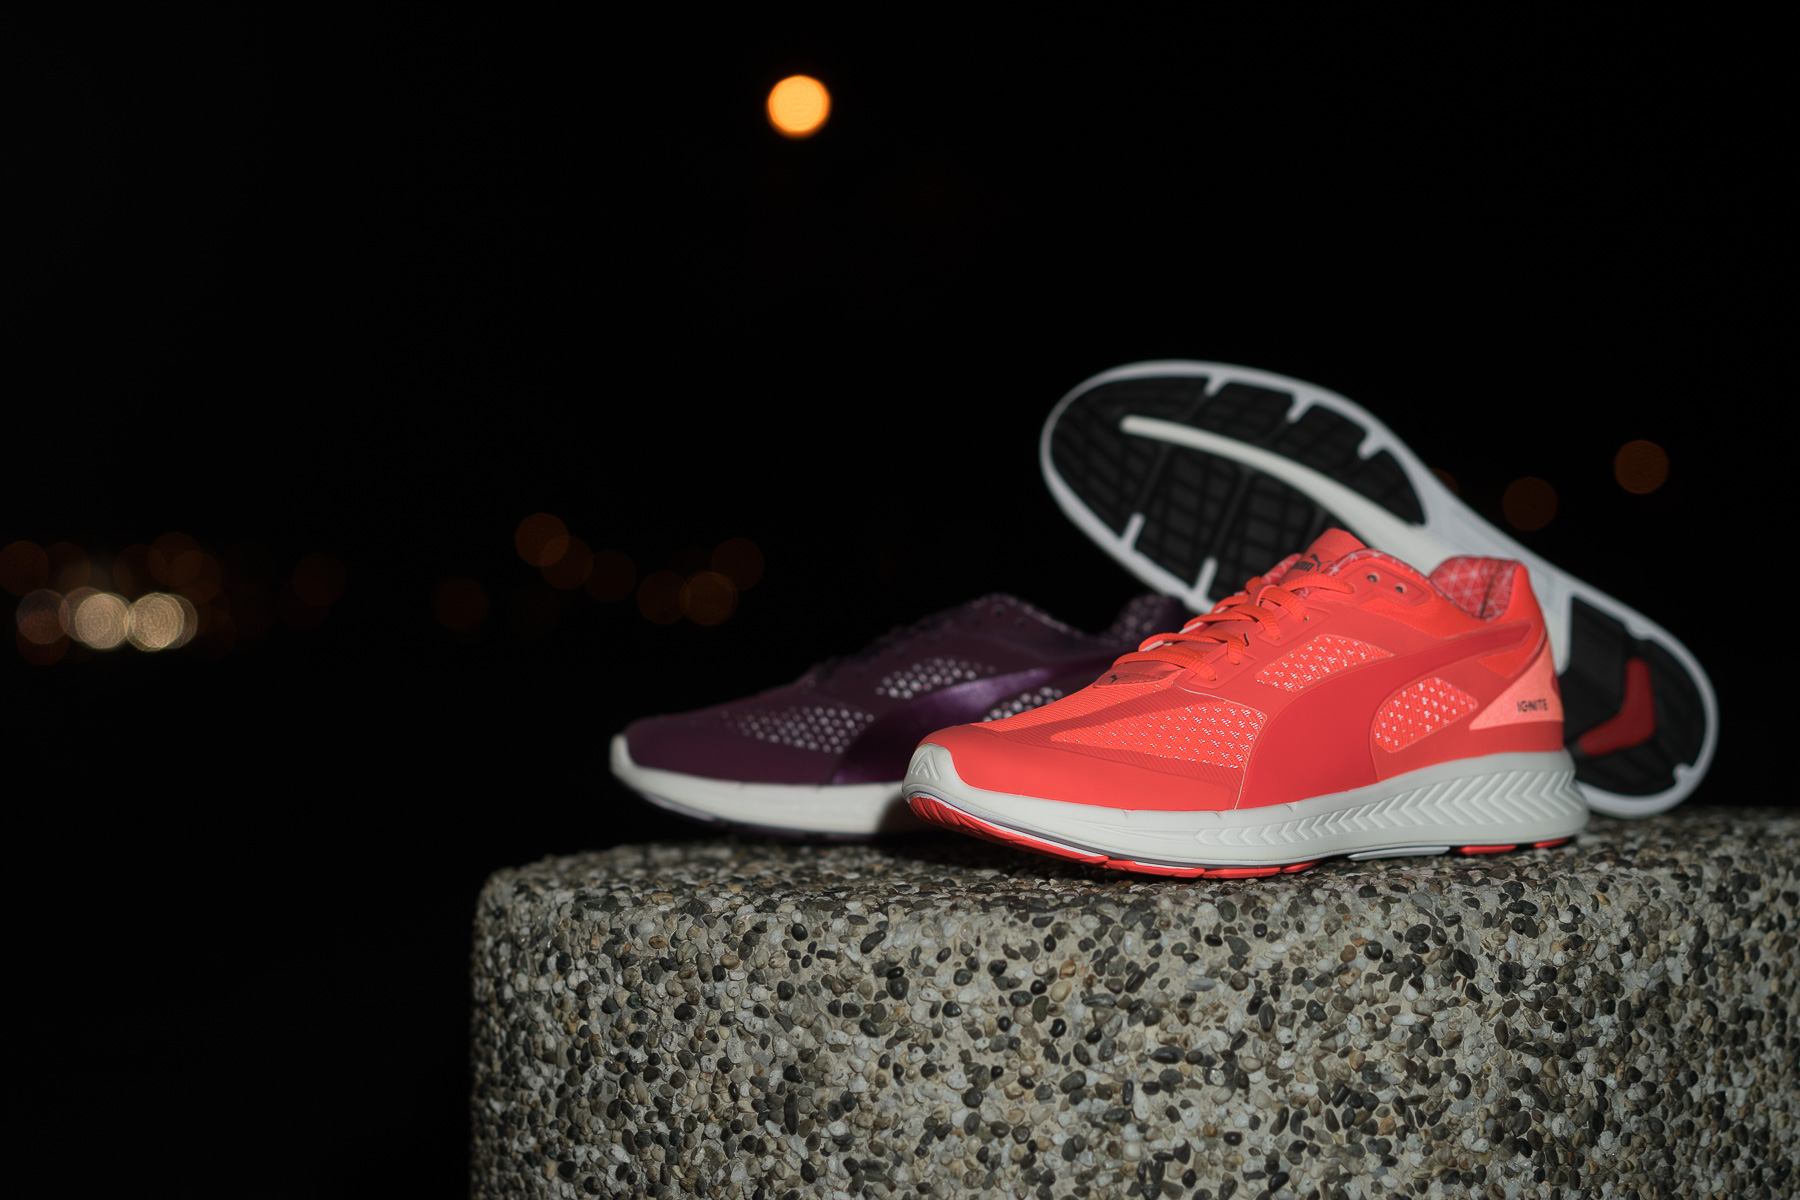 puma-ignite pwrwarm-night shooting-21